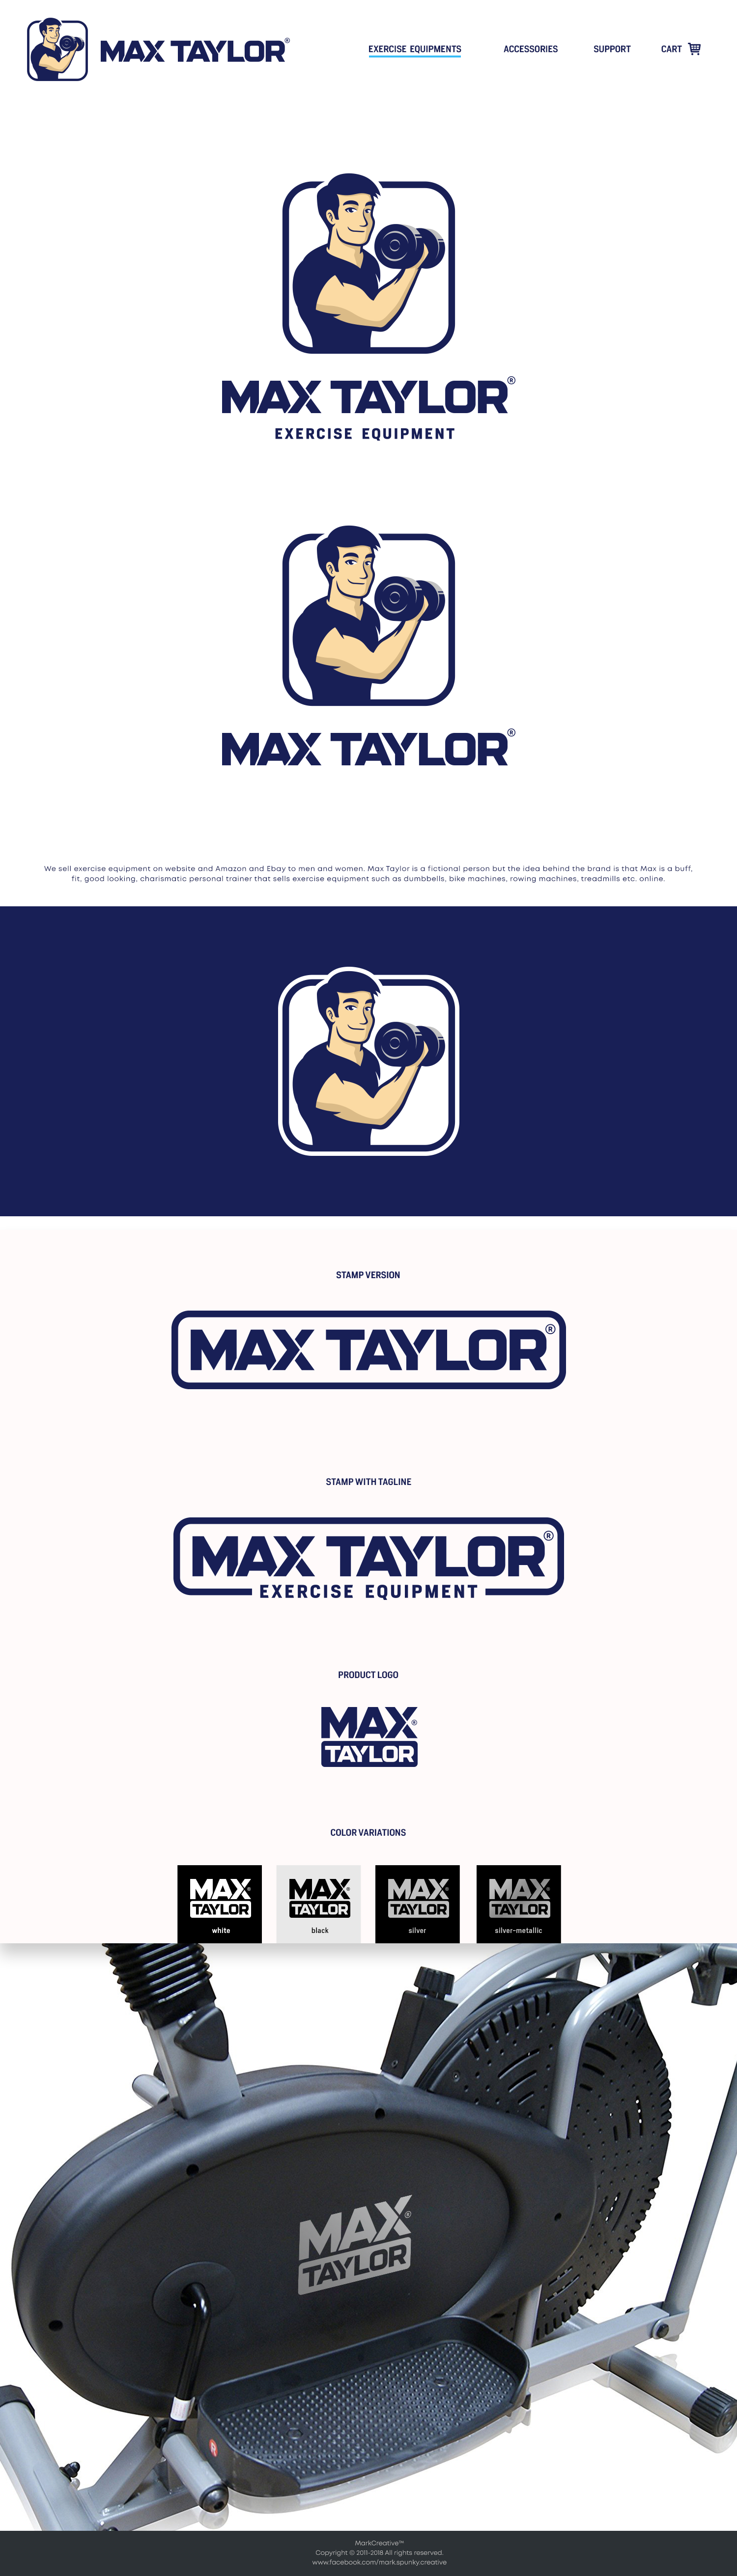 Design a logo for Max Taylor who sell exercise equipment